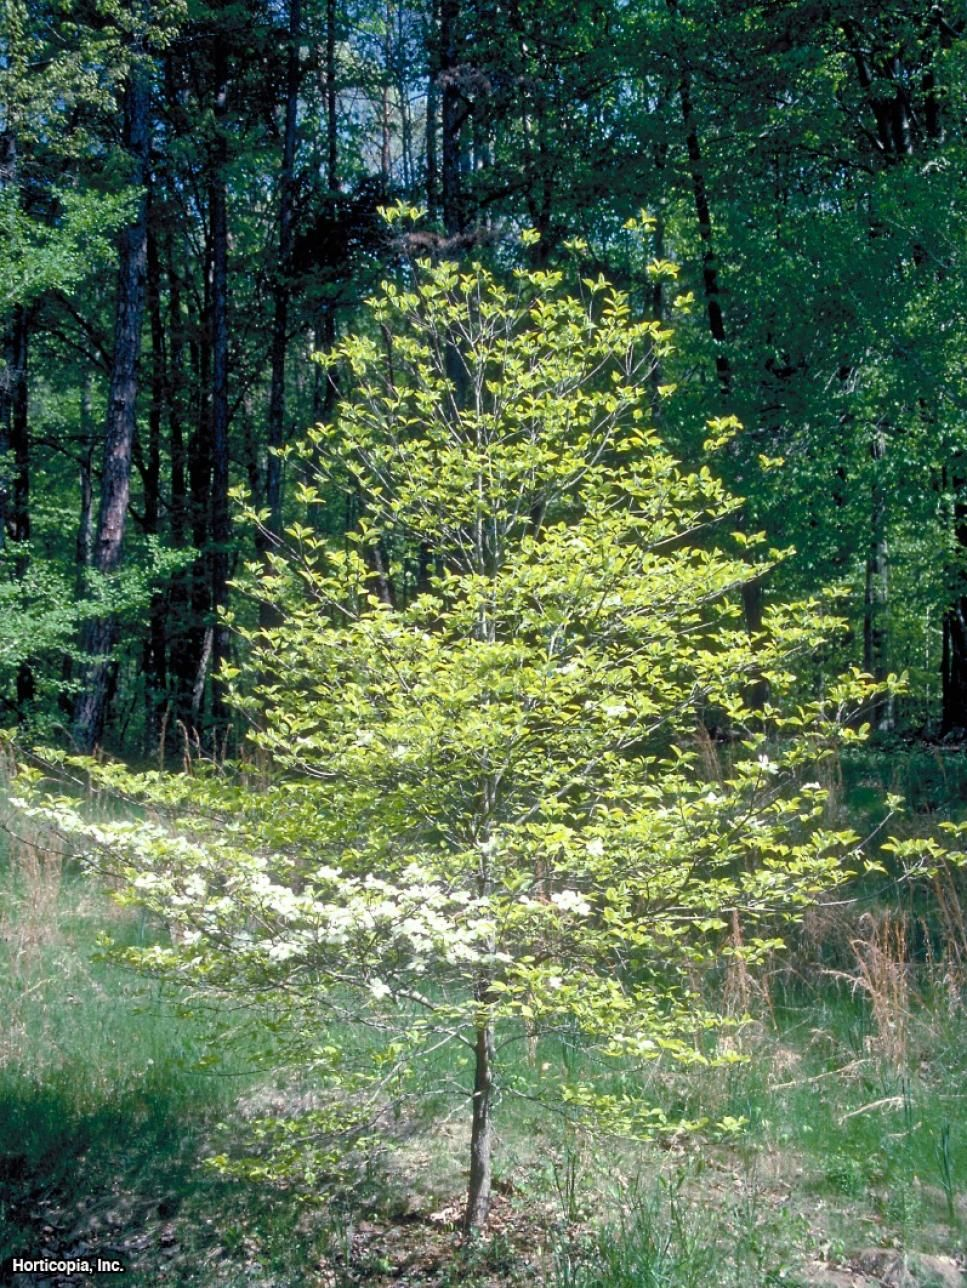 These lovely dogwood tree cultivars offer fourseason